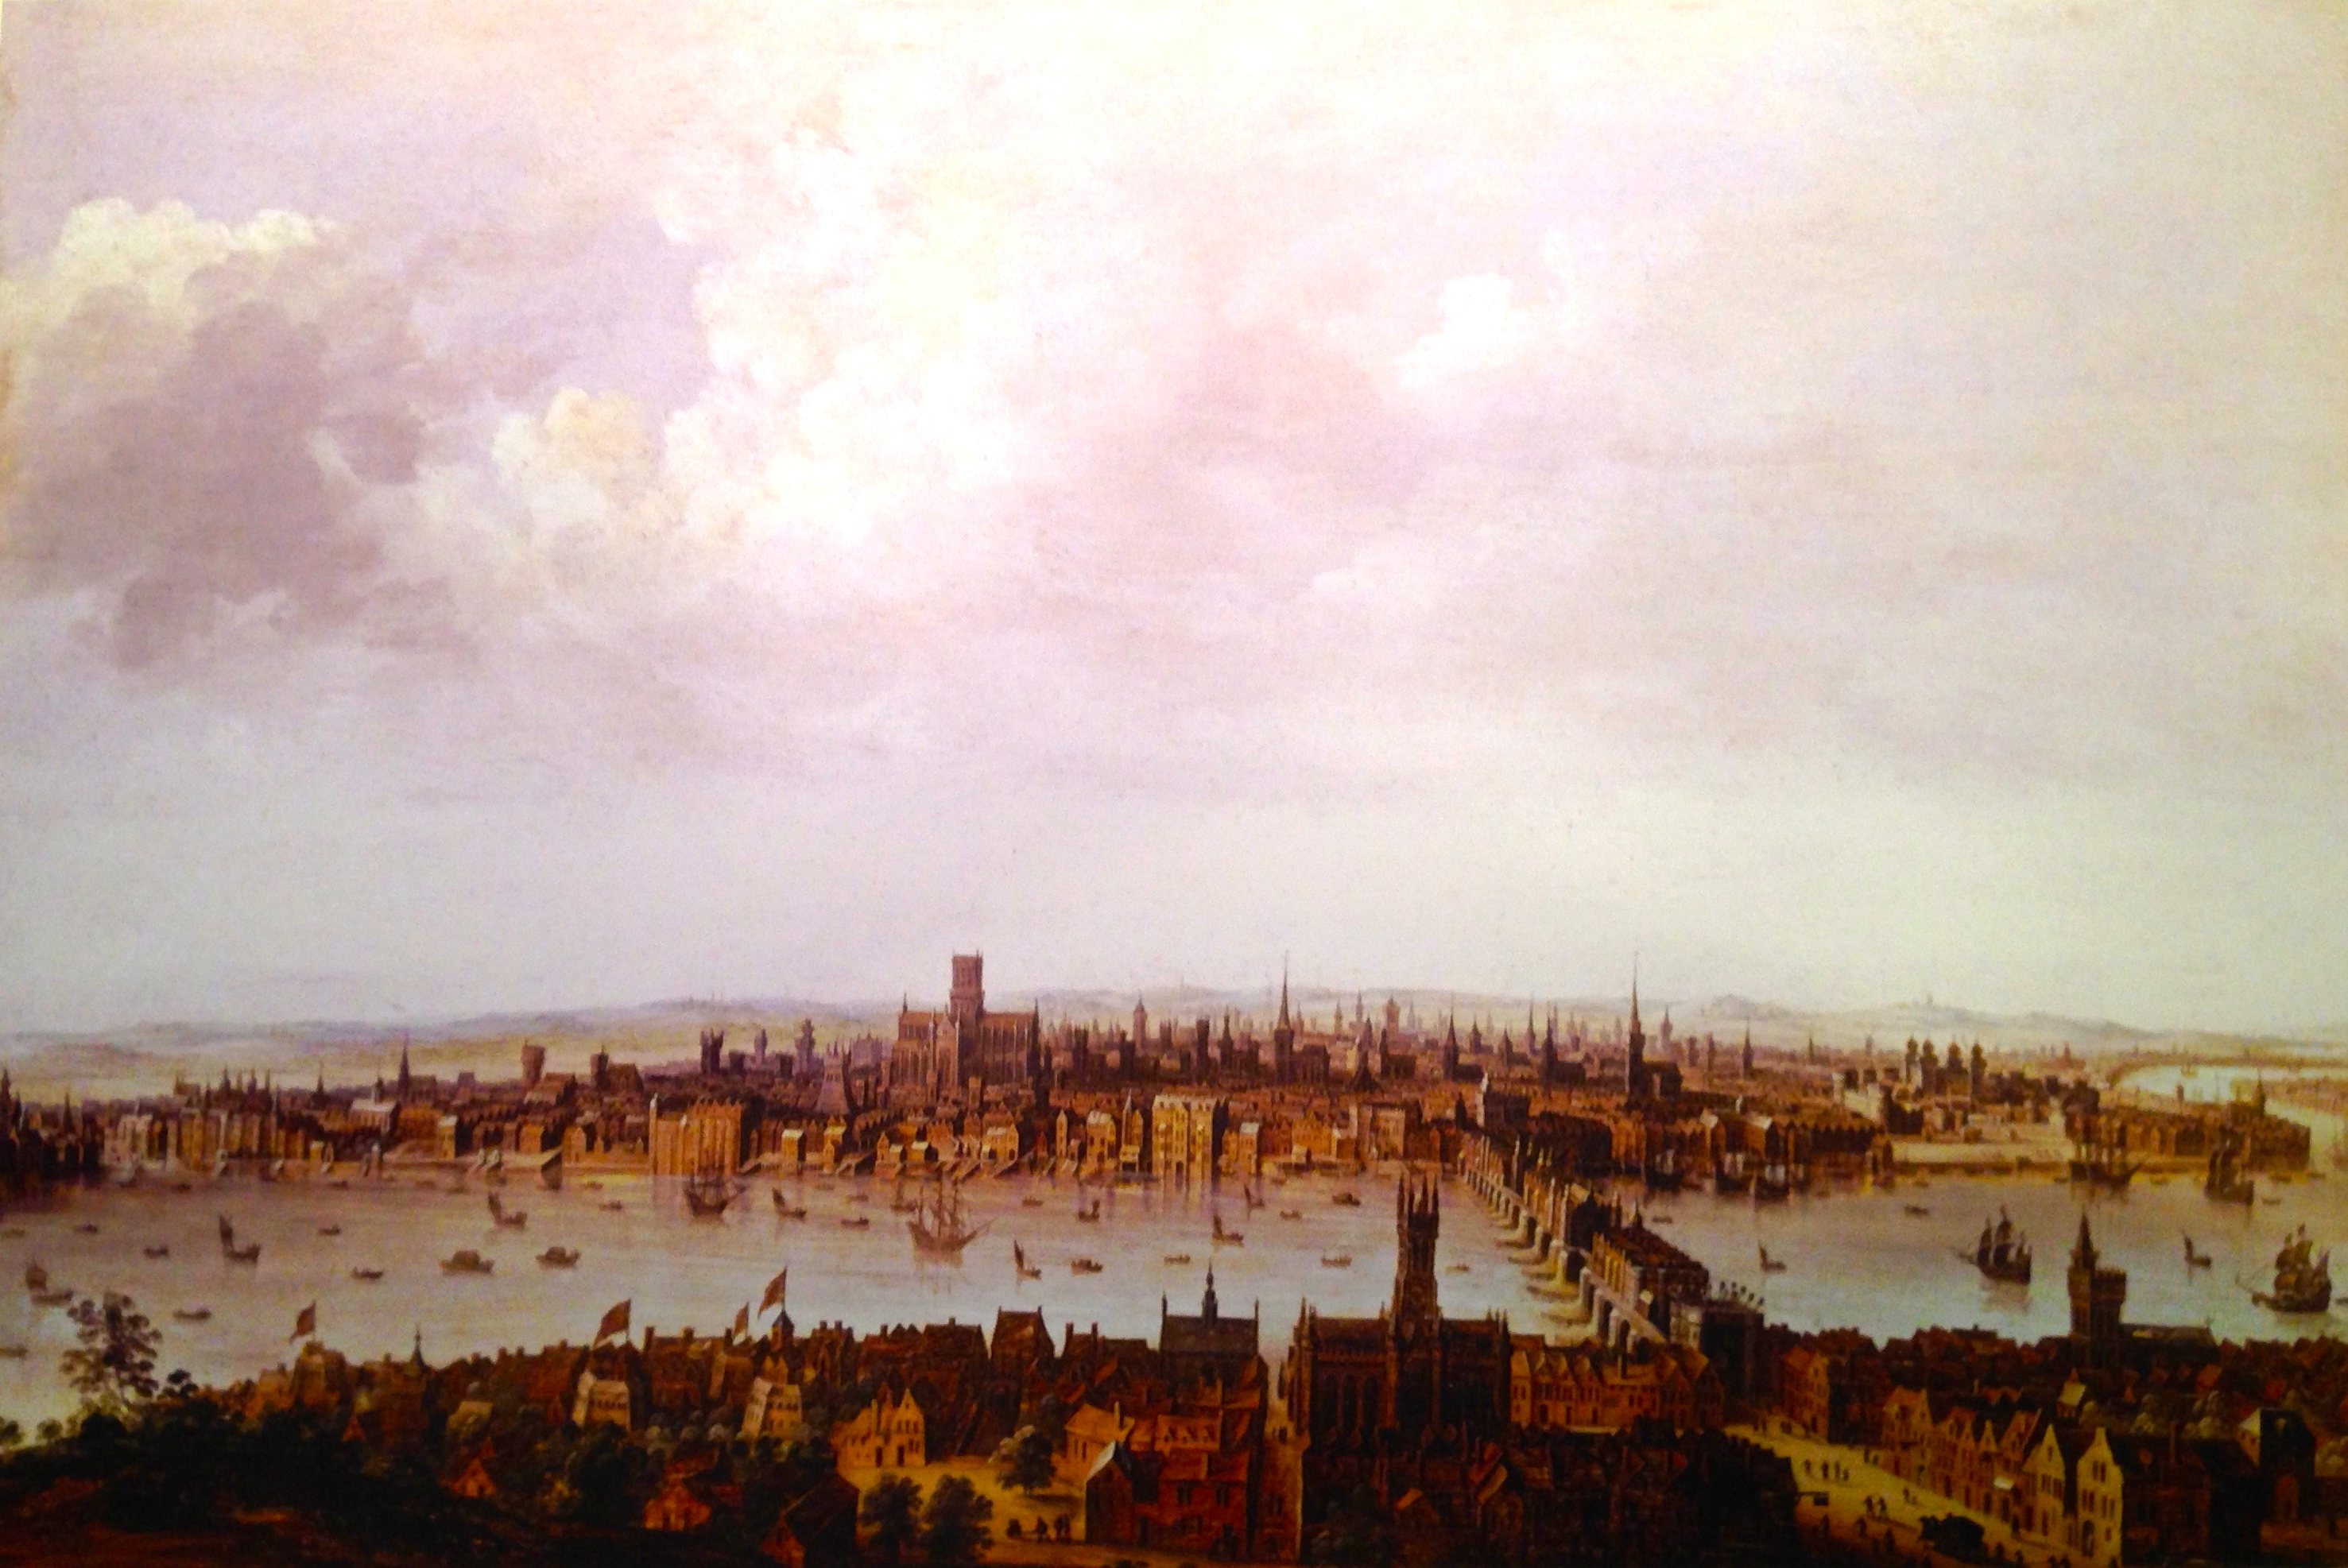 Great London Art: Ever Wonder What London Looked Like Before the Great Fire? Then Check out this VIew of London from Southwark Before the Great Fire of London of 1666